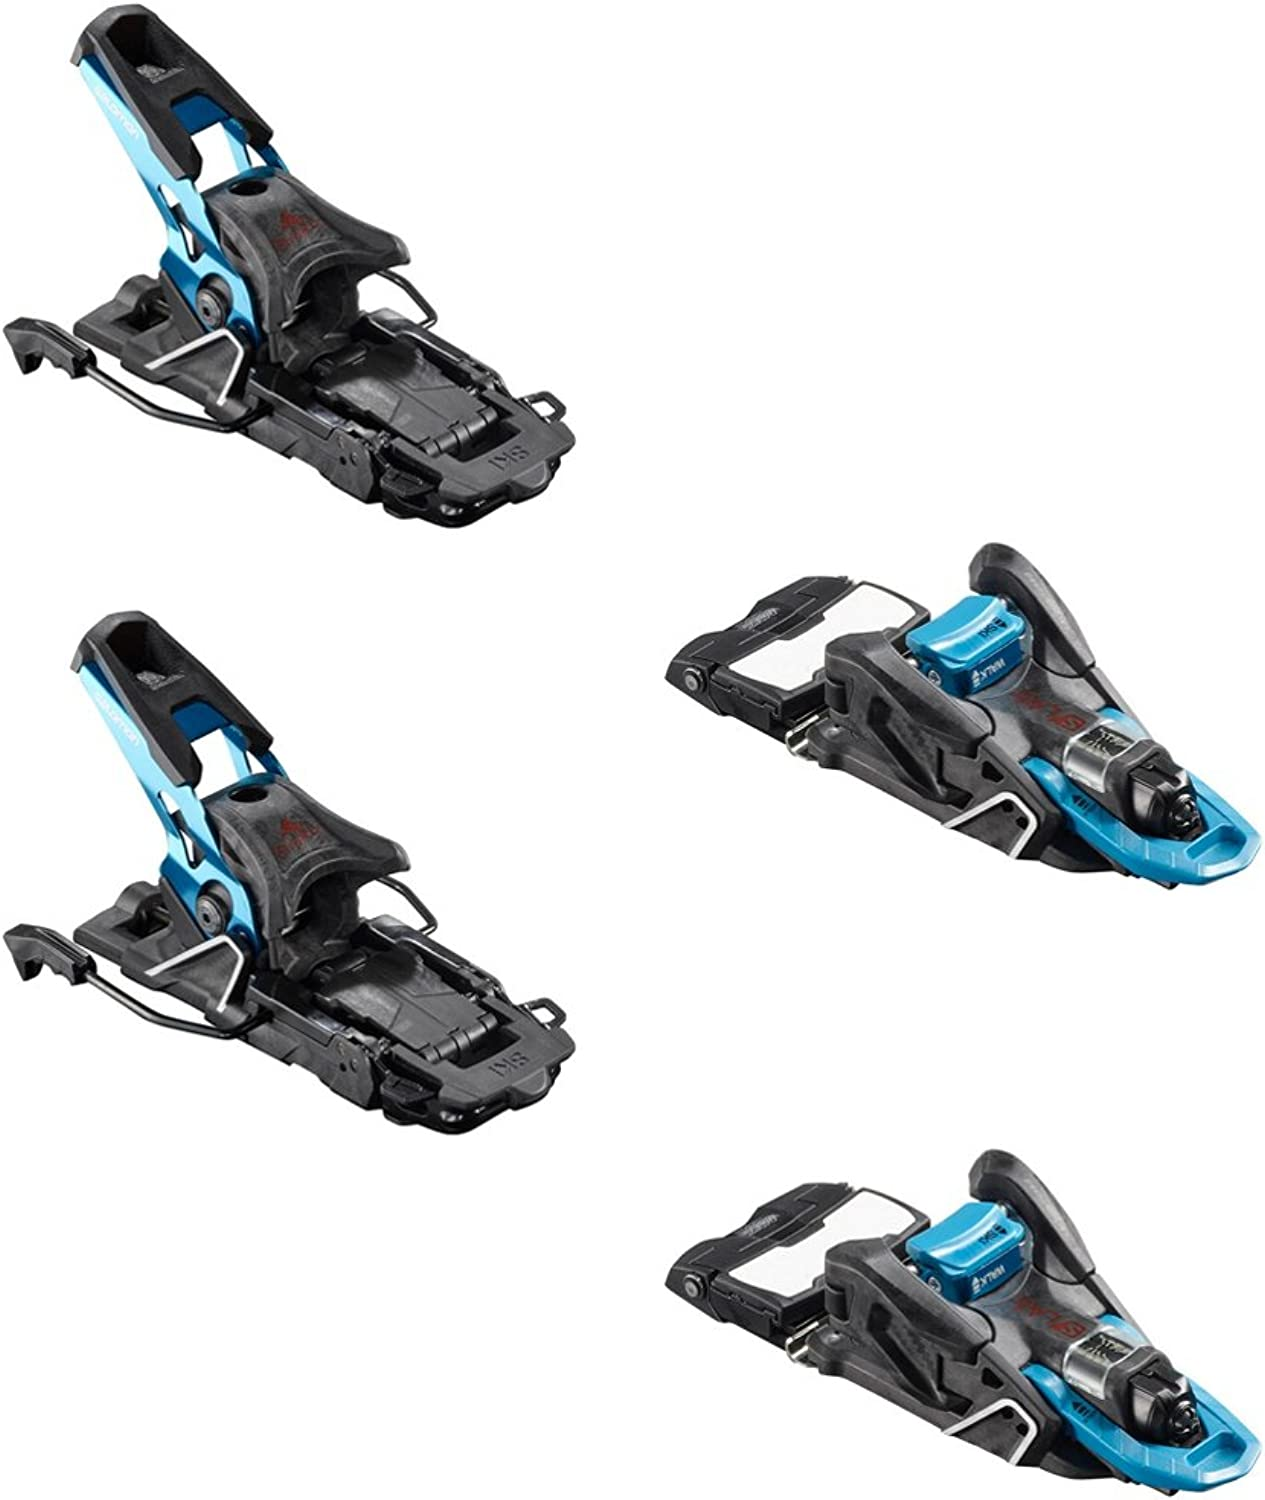 2019 Salomon S Lab Shift MNC B100 blueee Black Adult Ski Bindings